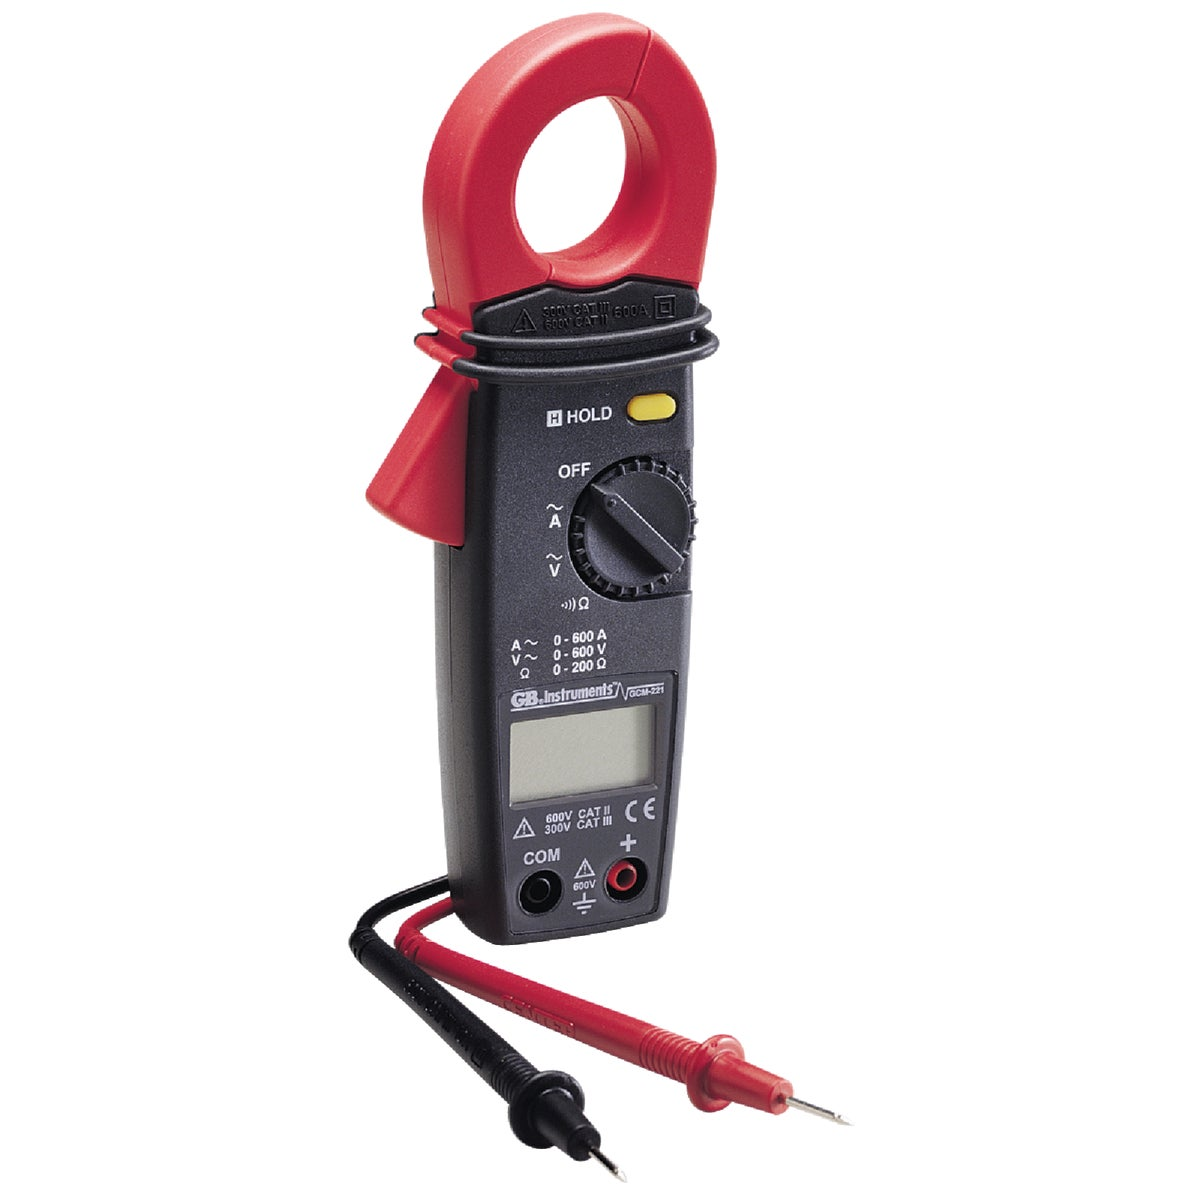 CLAMP-ON TESTER - GCM-221 by G B Electrical Inc